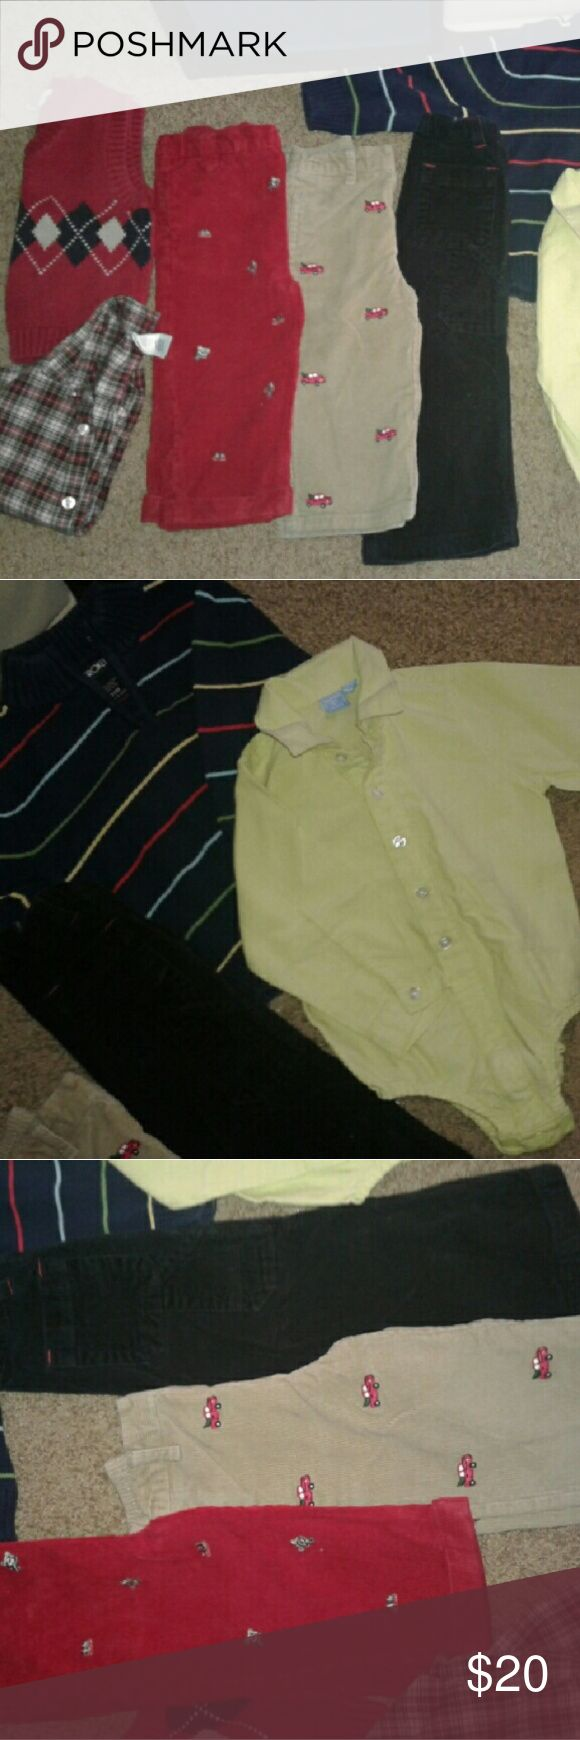 Winter Toddler bundle(boy) Size range from 12 months to 24 months/2t Gymboree, Old Navy, Sonoma and Cherokee Brands Very good condition. No stains, odors, rips, holes or tears. Comes from smoke and pet free home.  Sold as set ONLY. 7 pieces. 3 corduroy pants, 2 shirts, 1 sweater, 1 vest. Other